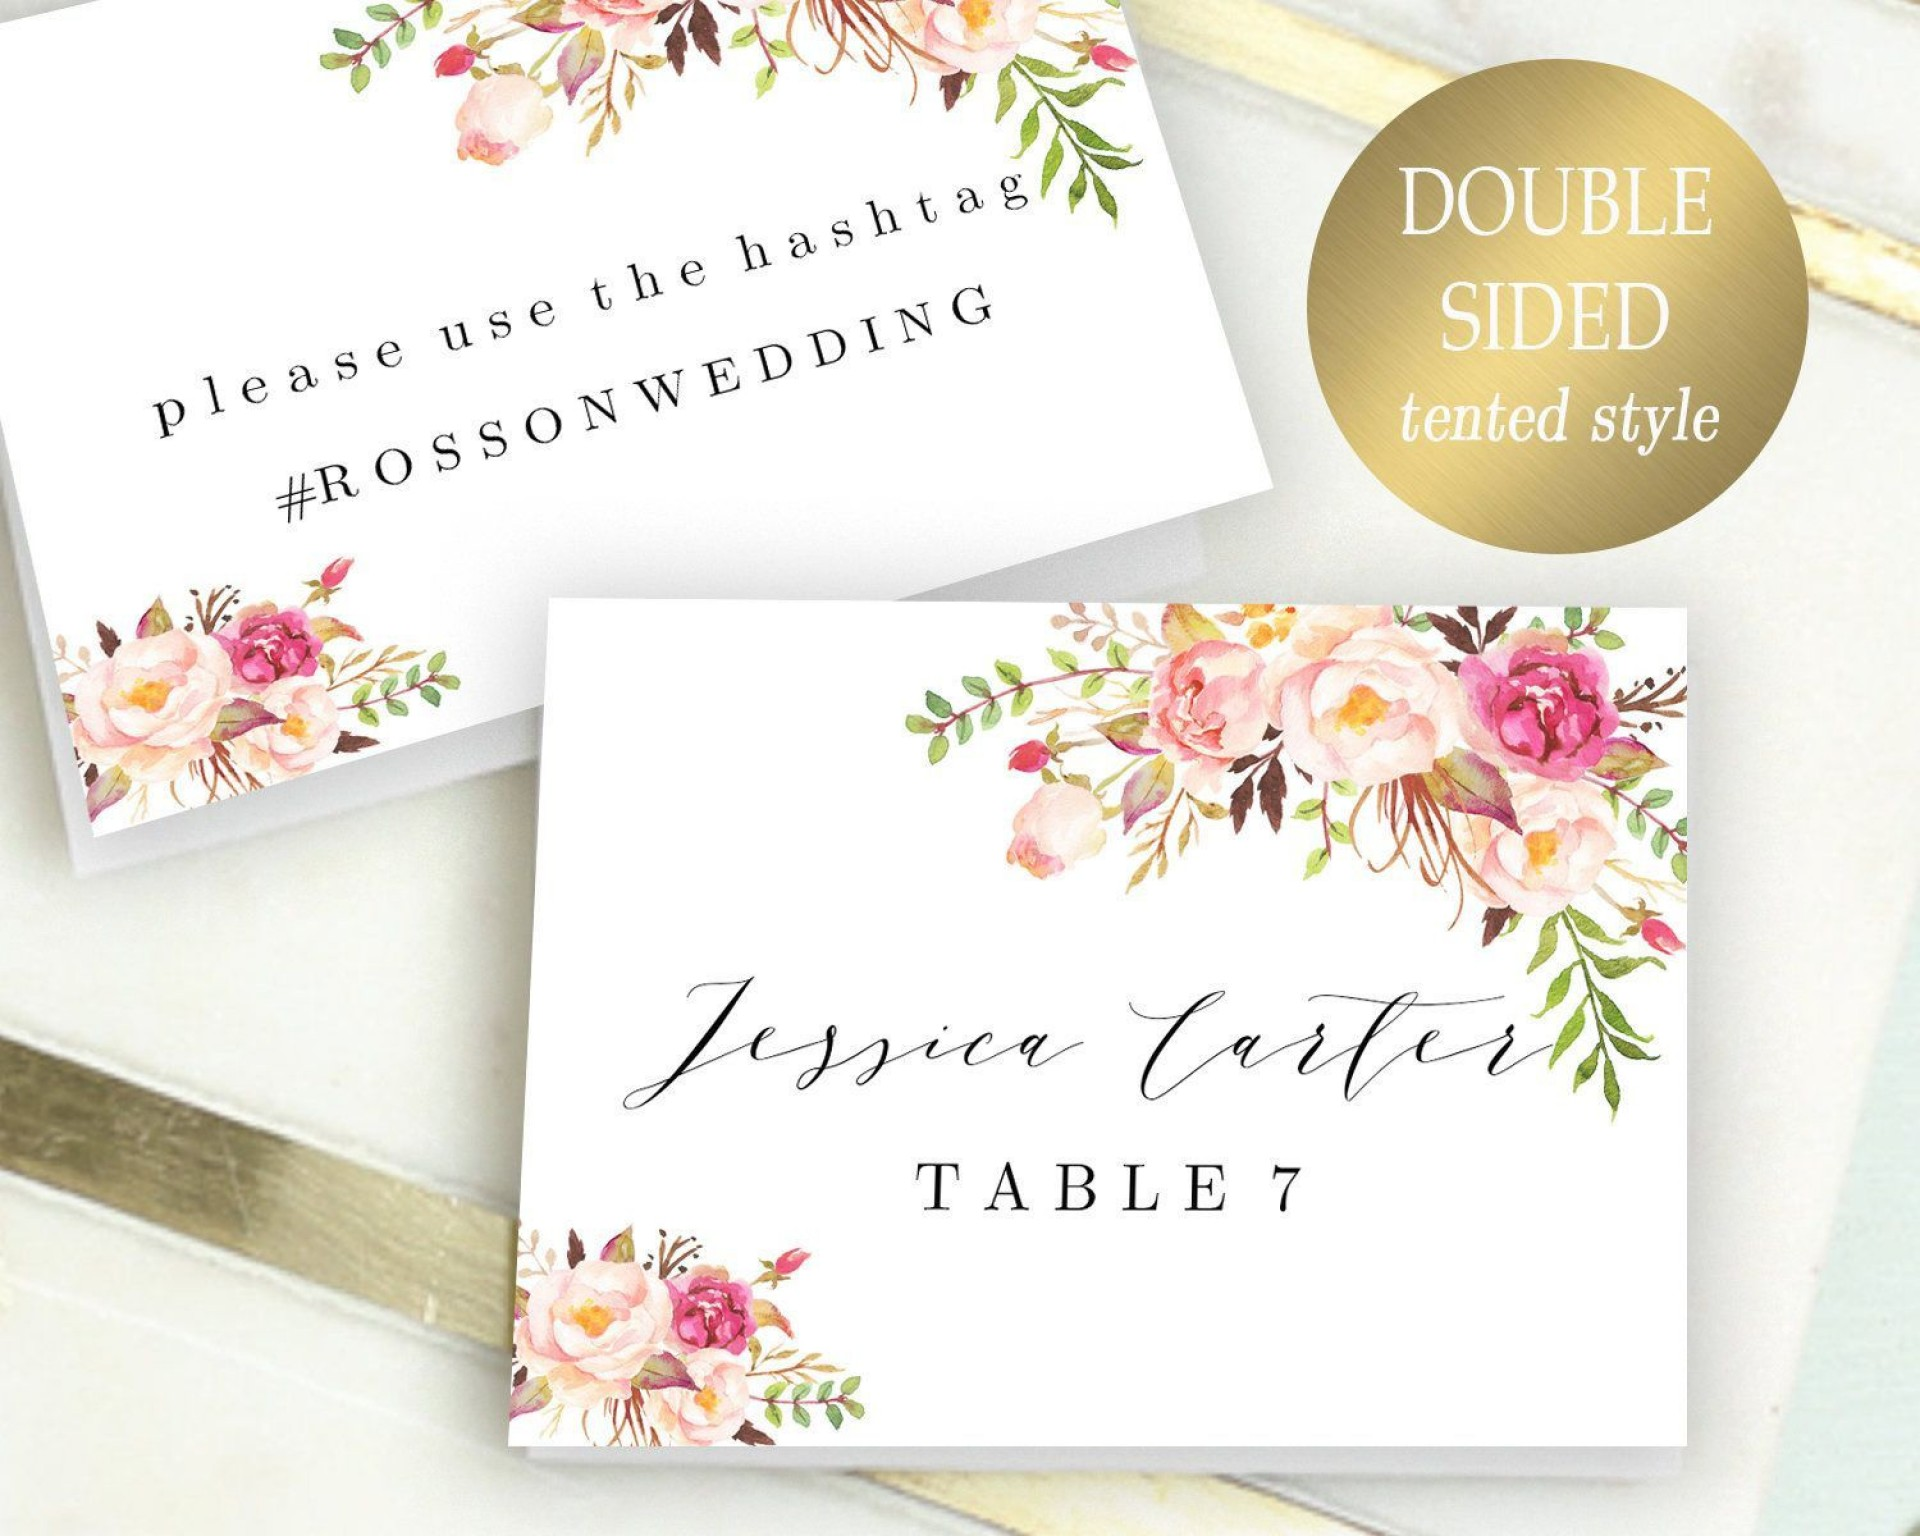 003 Exceptional Name Place Card Template For Wedding High Resolution  Free Word1920